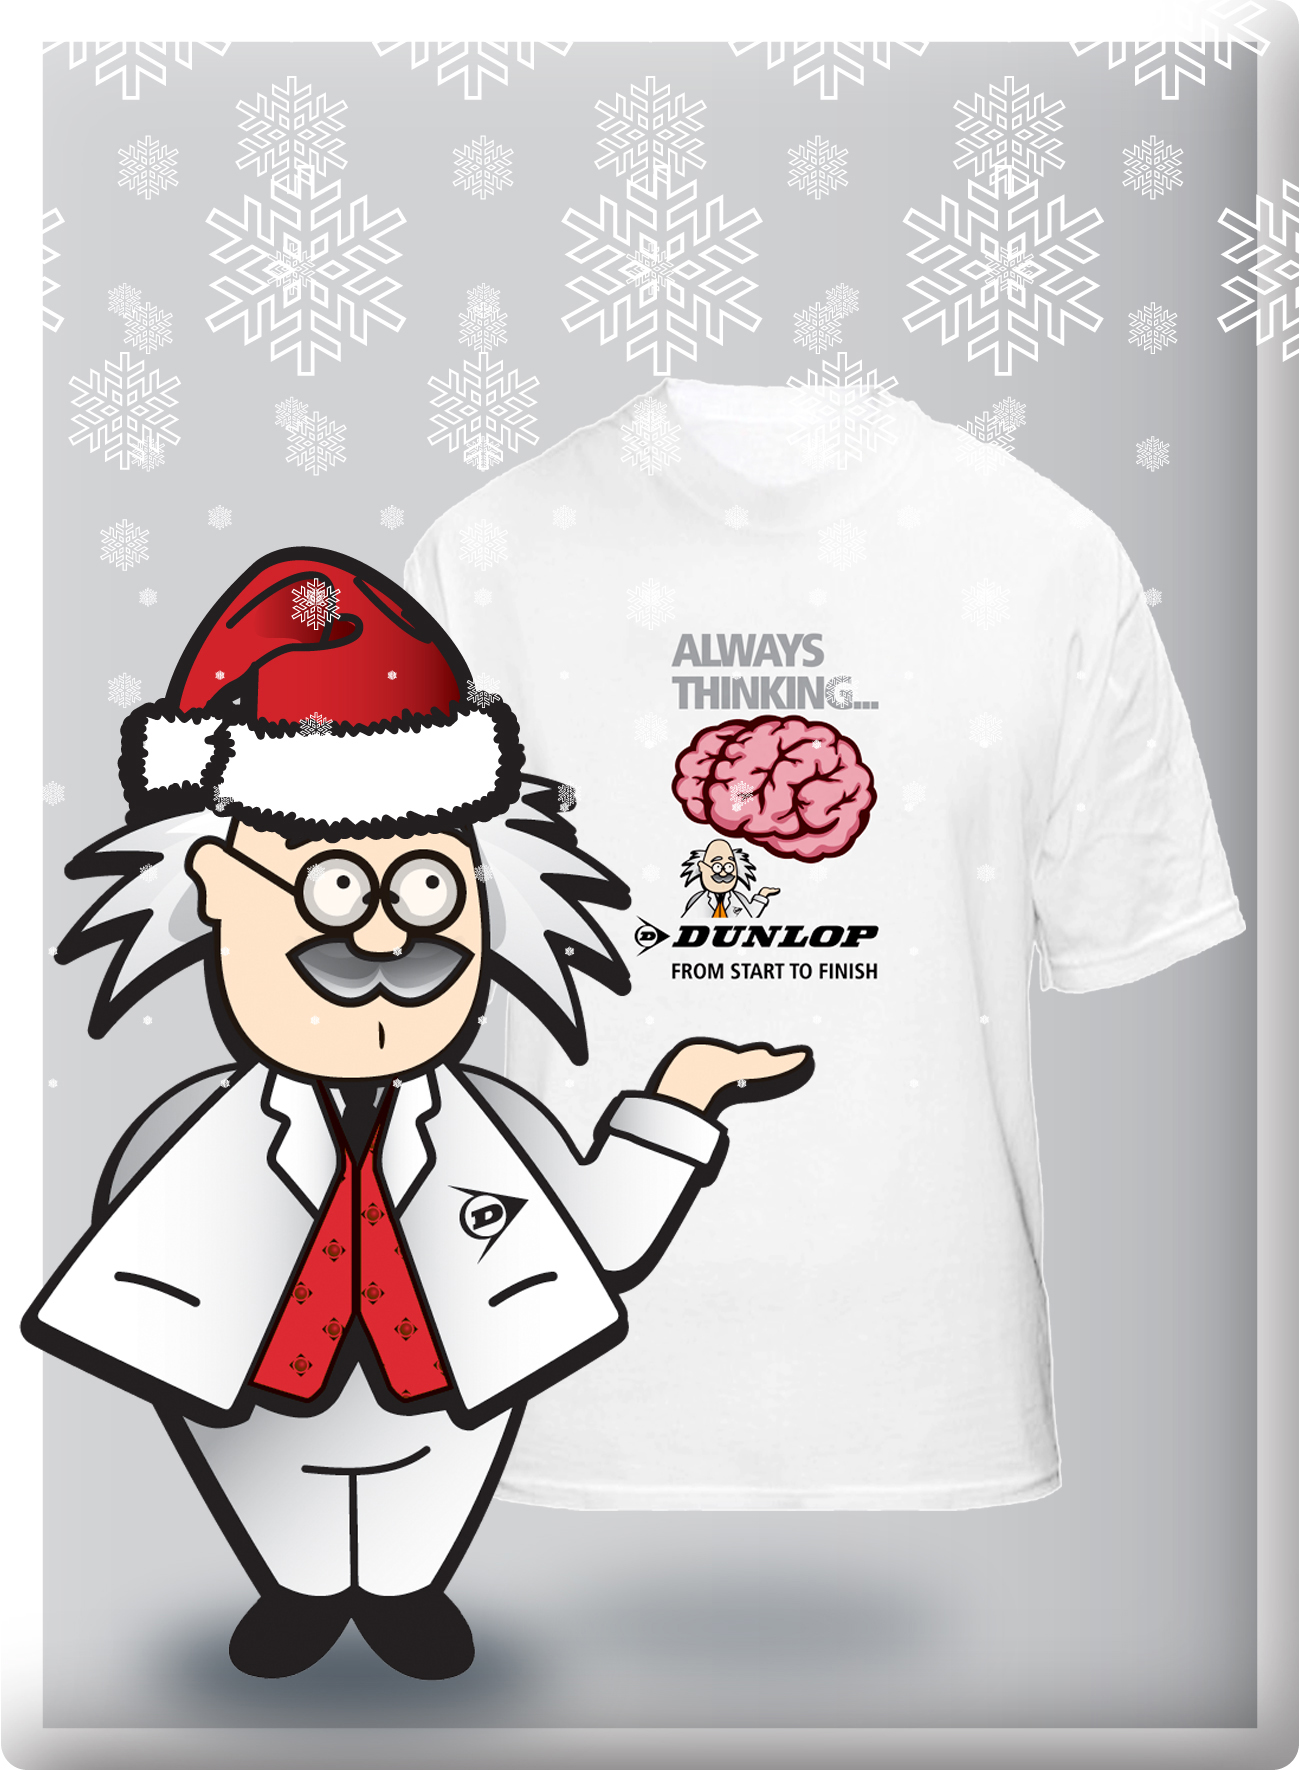 Professor Dunlop shares some festive cheer by giving away promotional BRAINBOX t-shirts to the next 100 people to enter the Dunlop Adhesives competition.